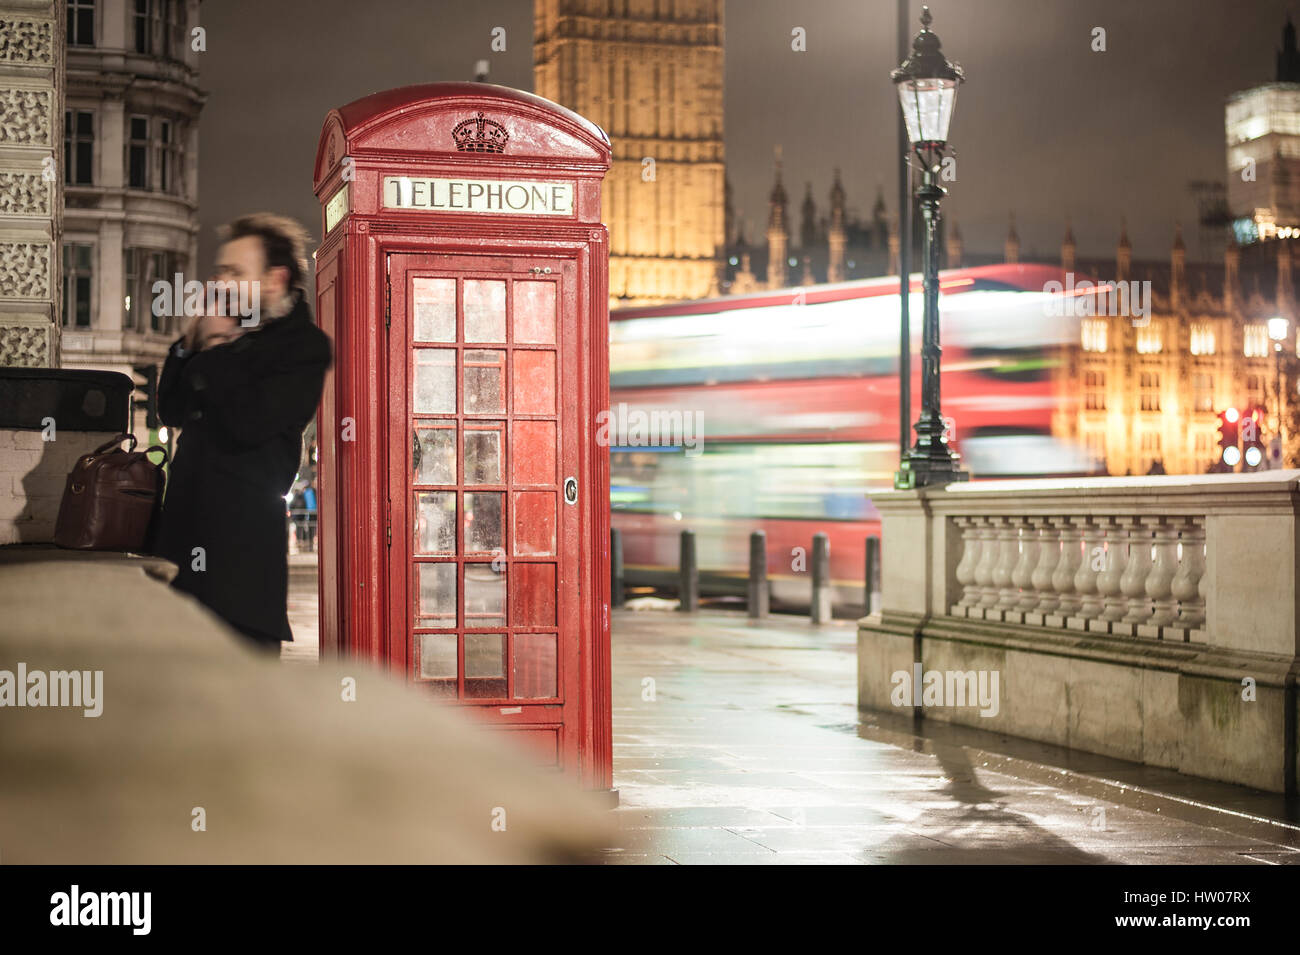 Man at the telephone near the red telephone box in London - UK - Stock Image